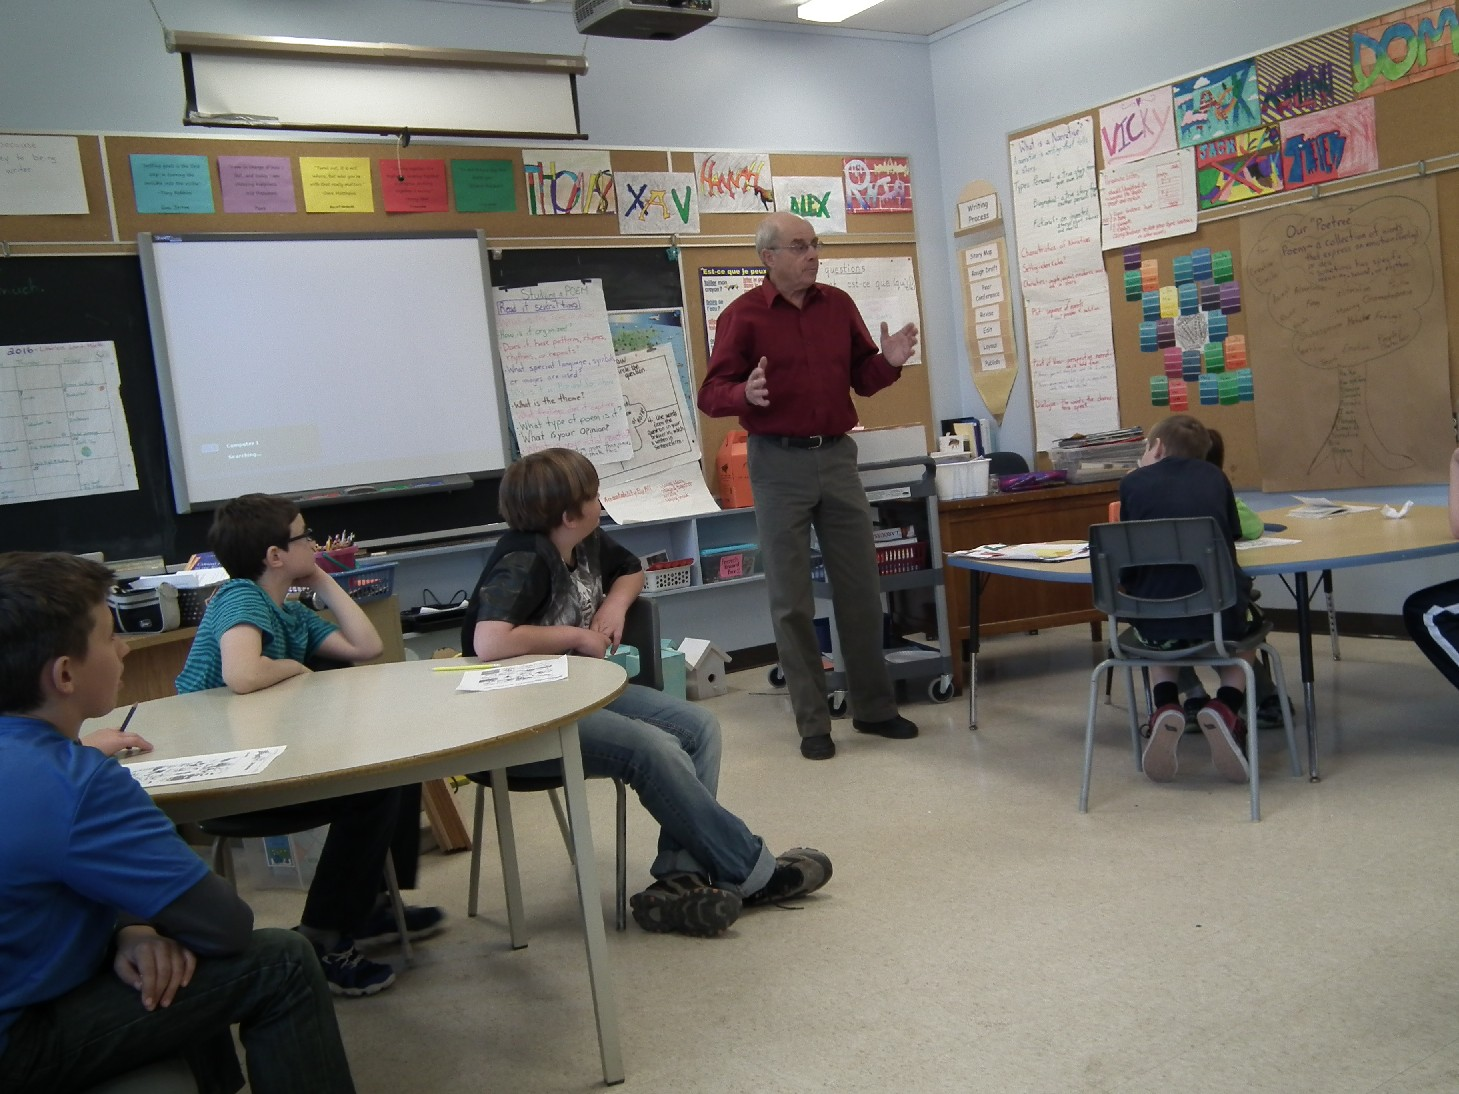 Hatchery member Bruce Campbell teaches a series of lessons about the hatchery, fish habitat, ecology and conservation